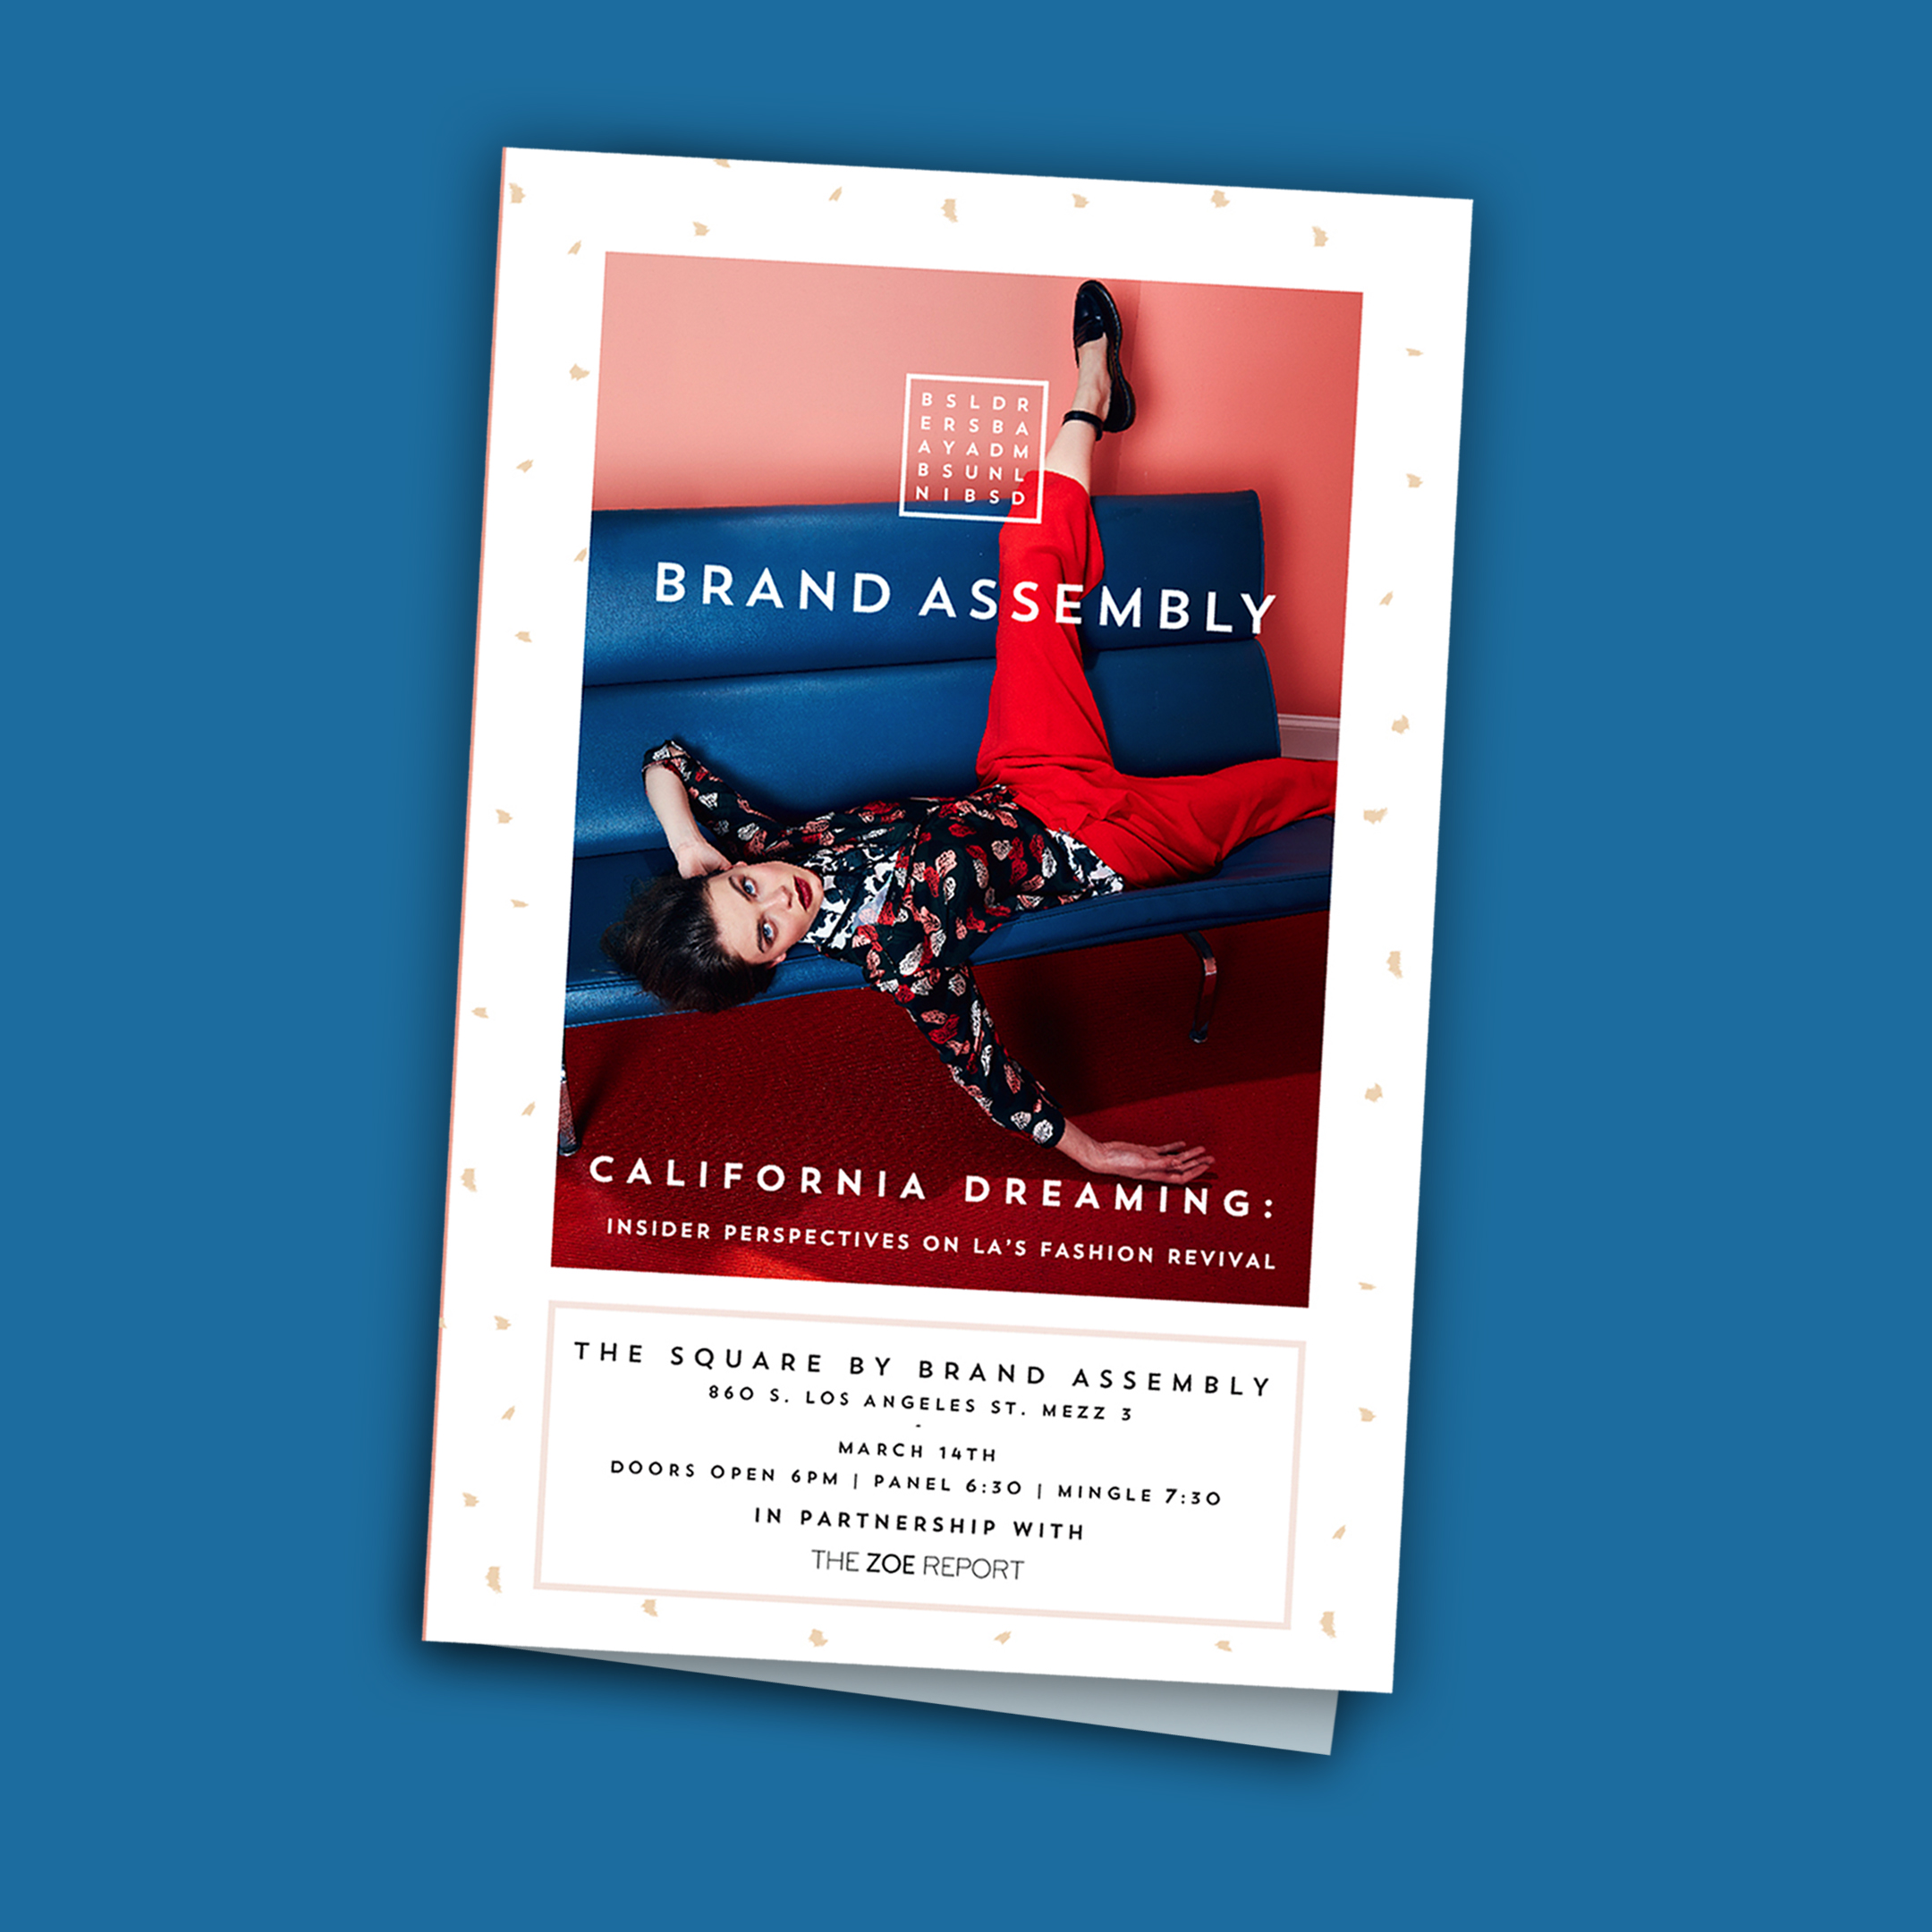 BRAND ASSEMBLY EVENT BROCHURE